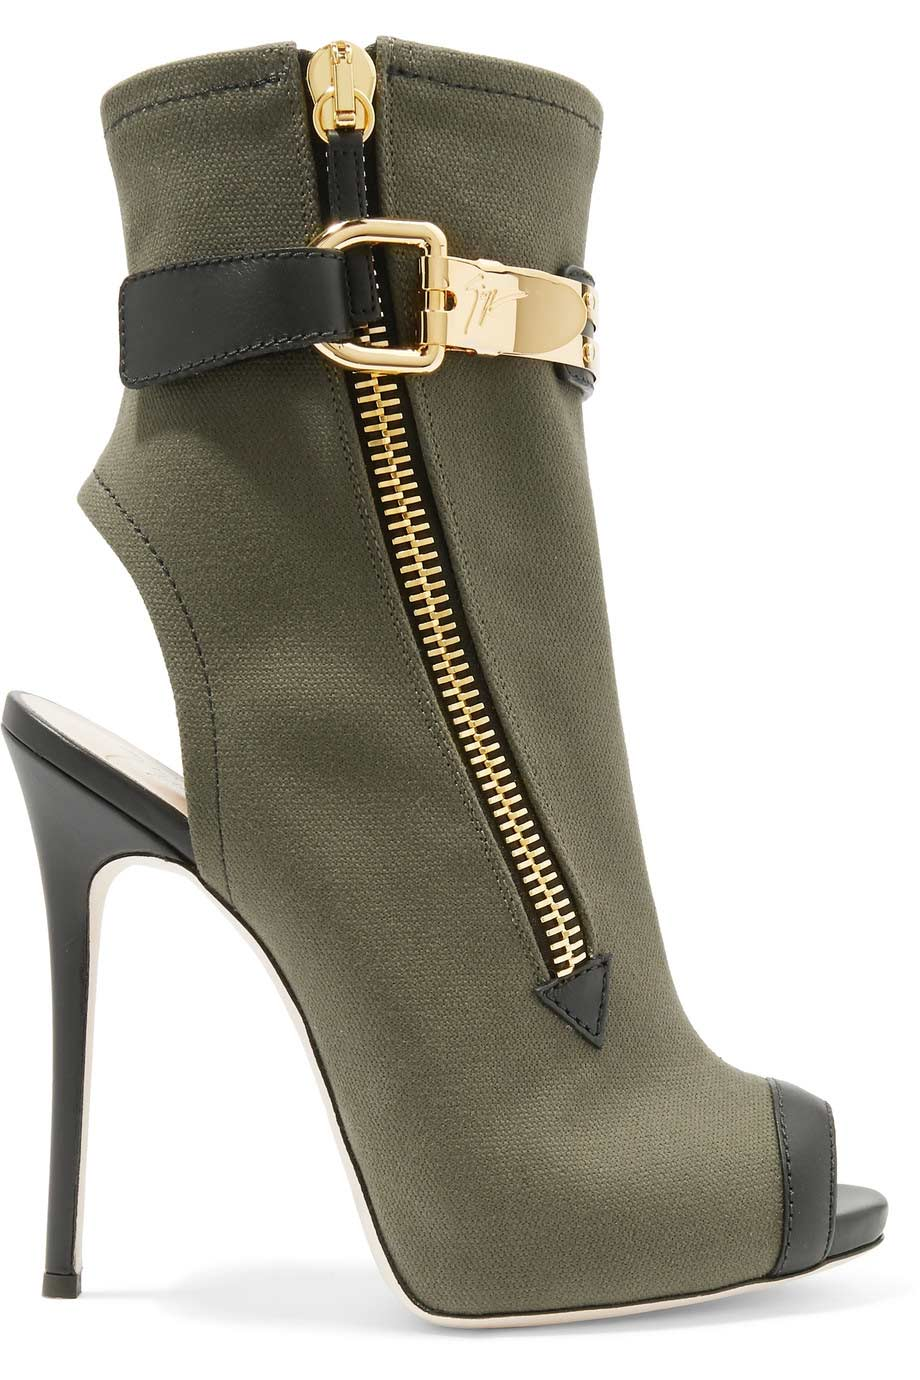 Roxie leather trimmed canvas ankle boots, Giuseppe Zanotti